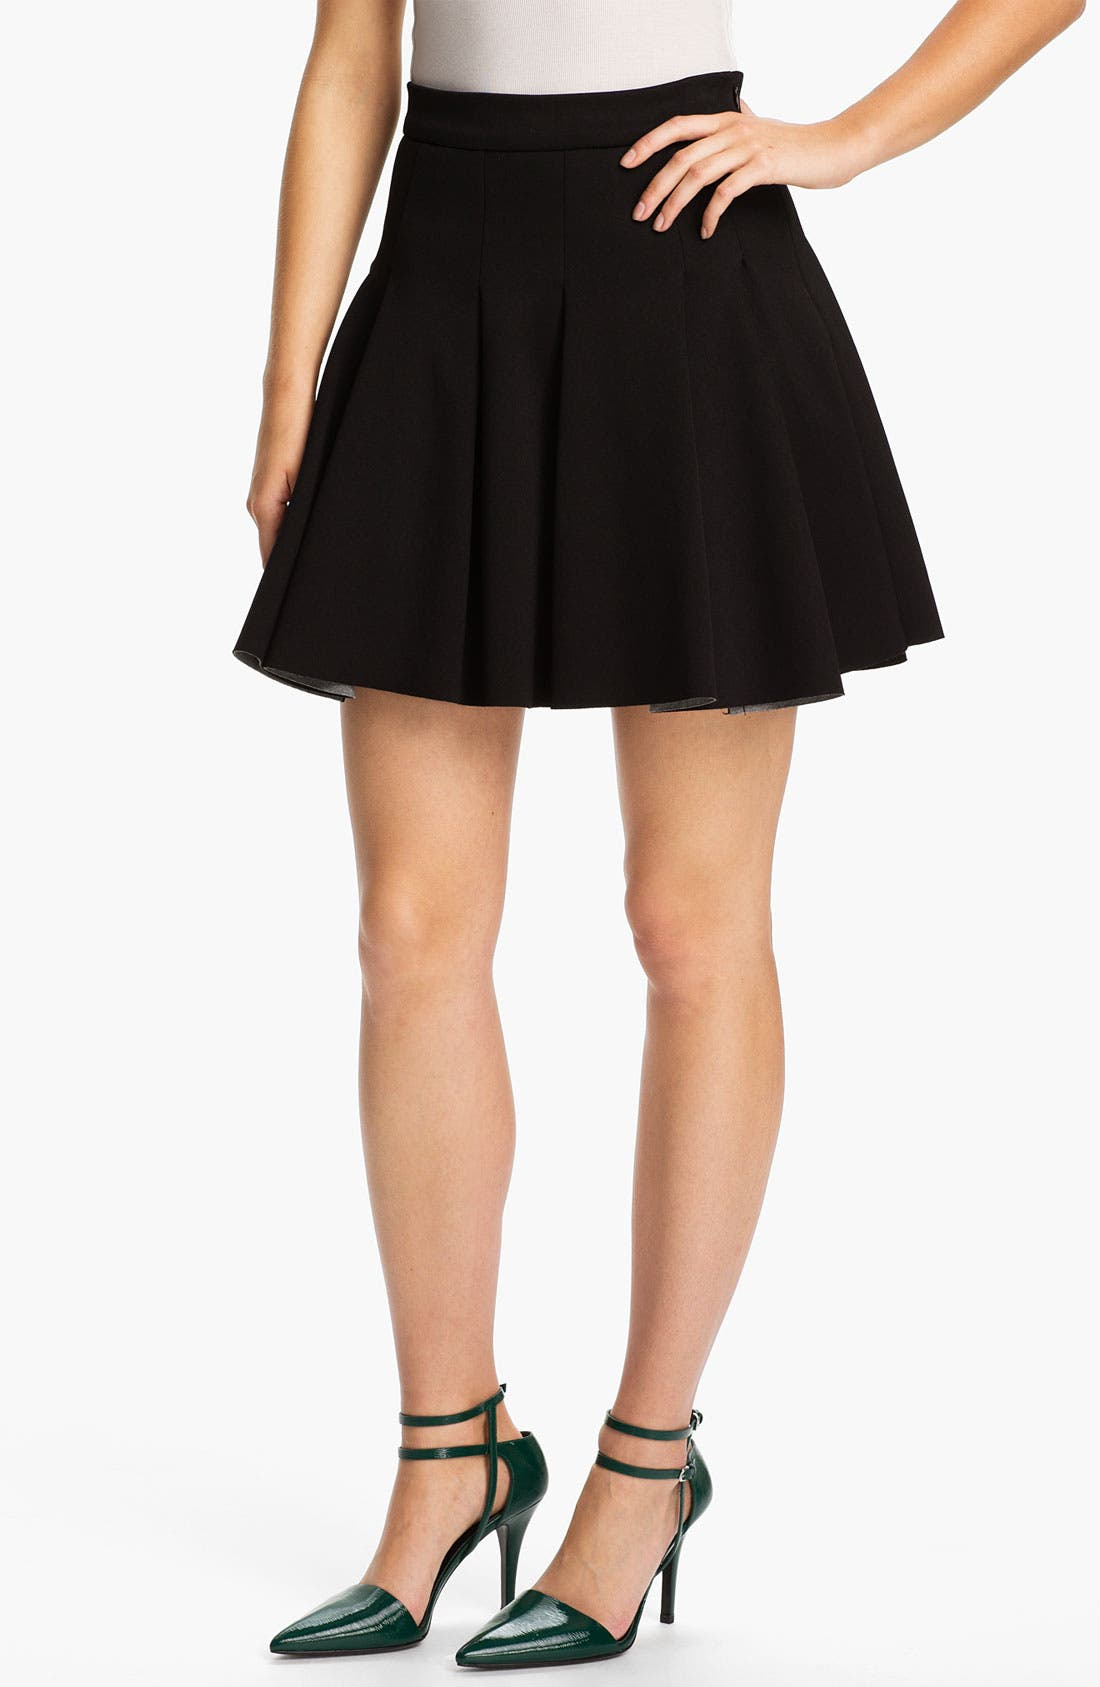 Alternate Image 1 Selected - T by Alexander Wang Neoprene Skirt